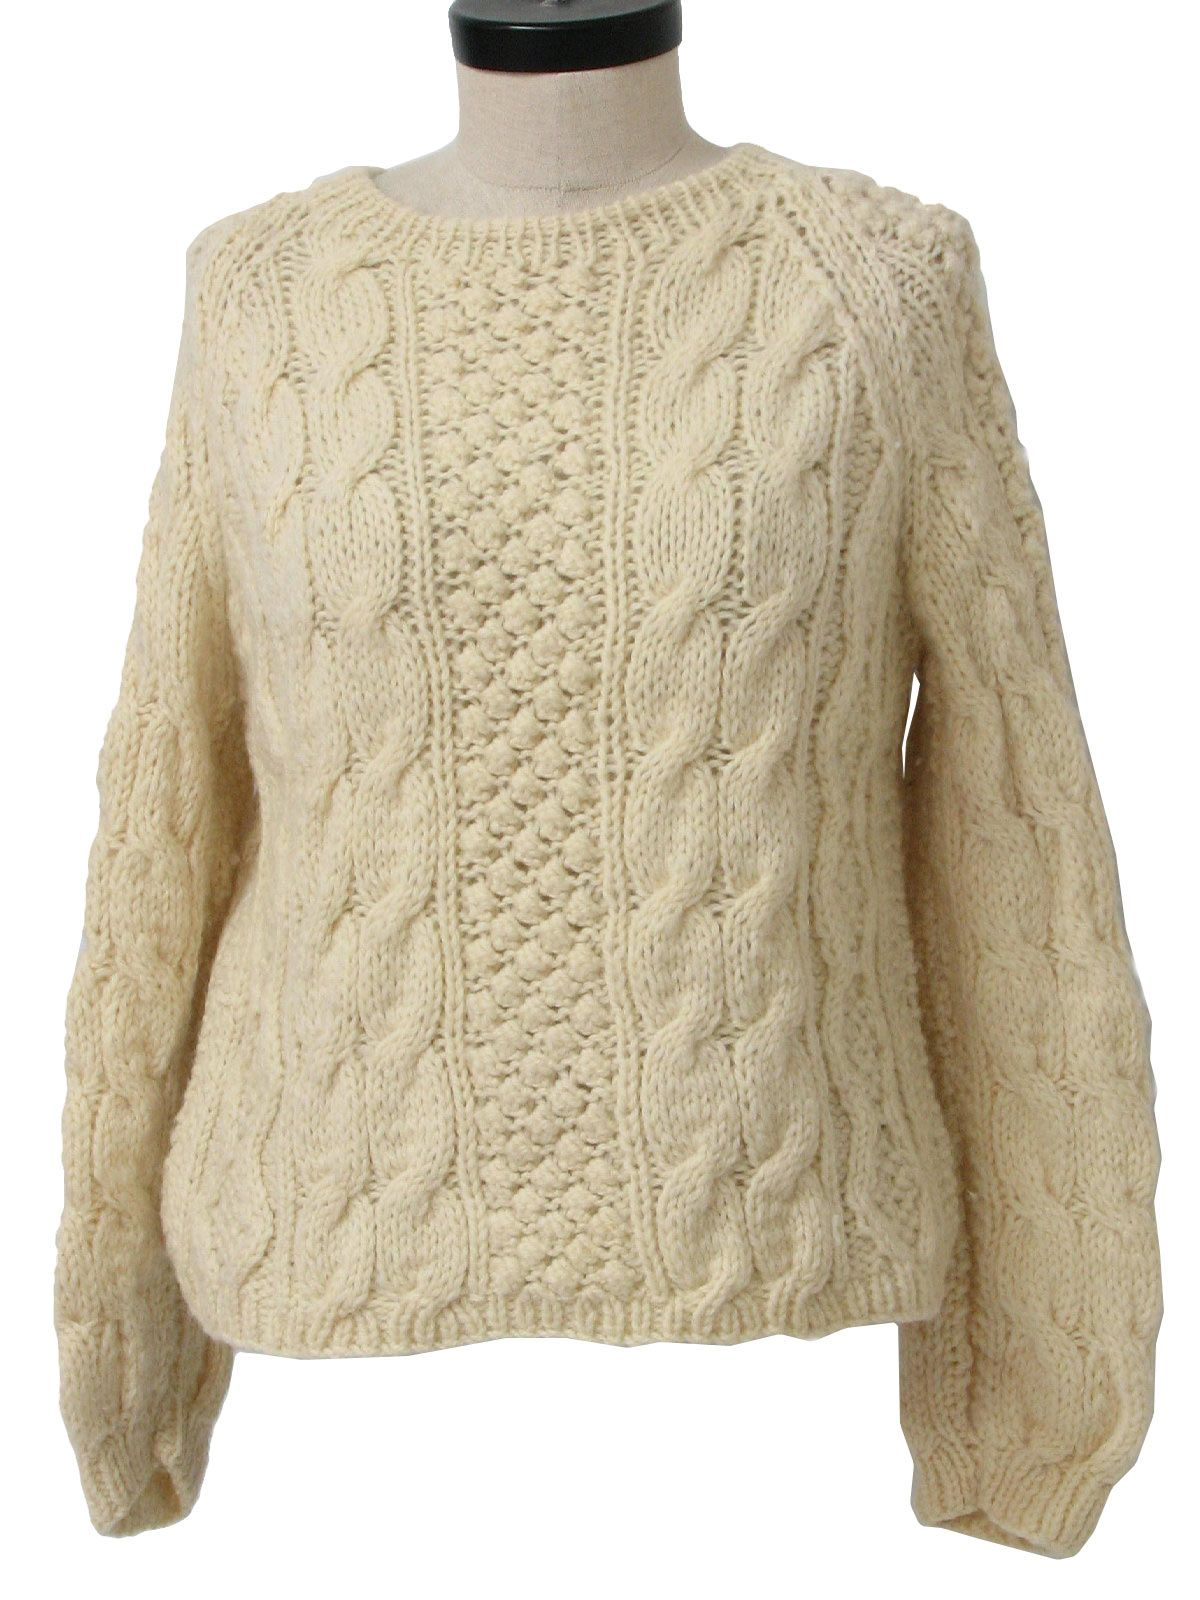 70s -Lerner Shops- Womens off white hand knit wool, longsleeve ...